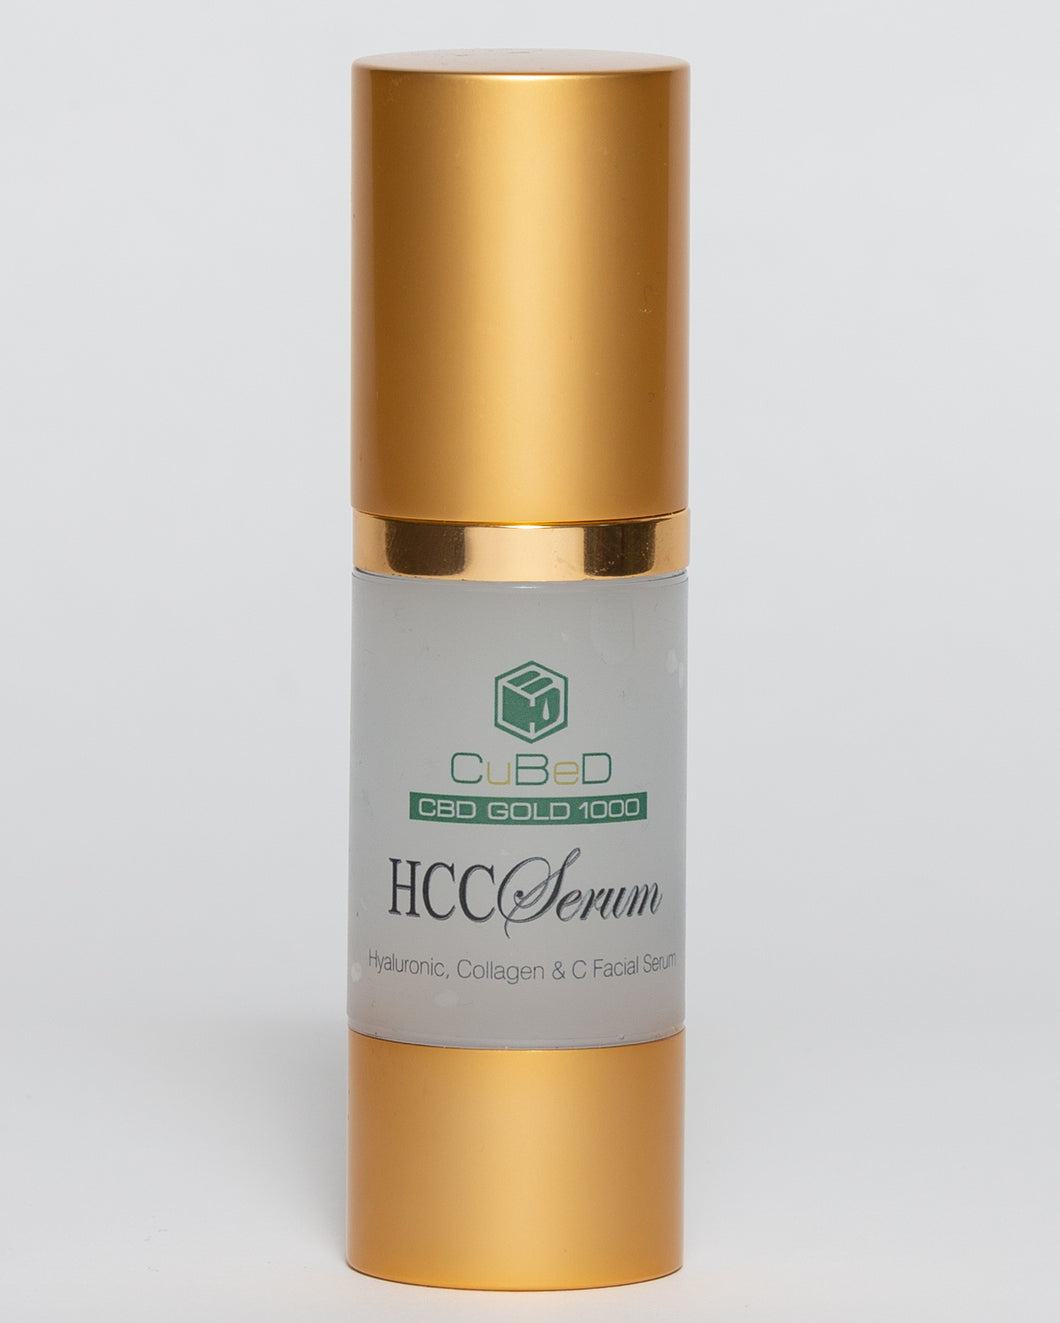 CuBeD Gold Hyaluronic, Collagen, & Vitamin C Serum - 1000mg / 30ml